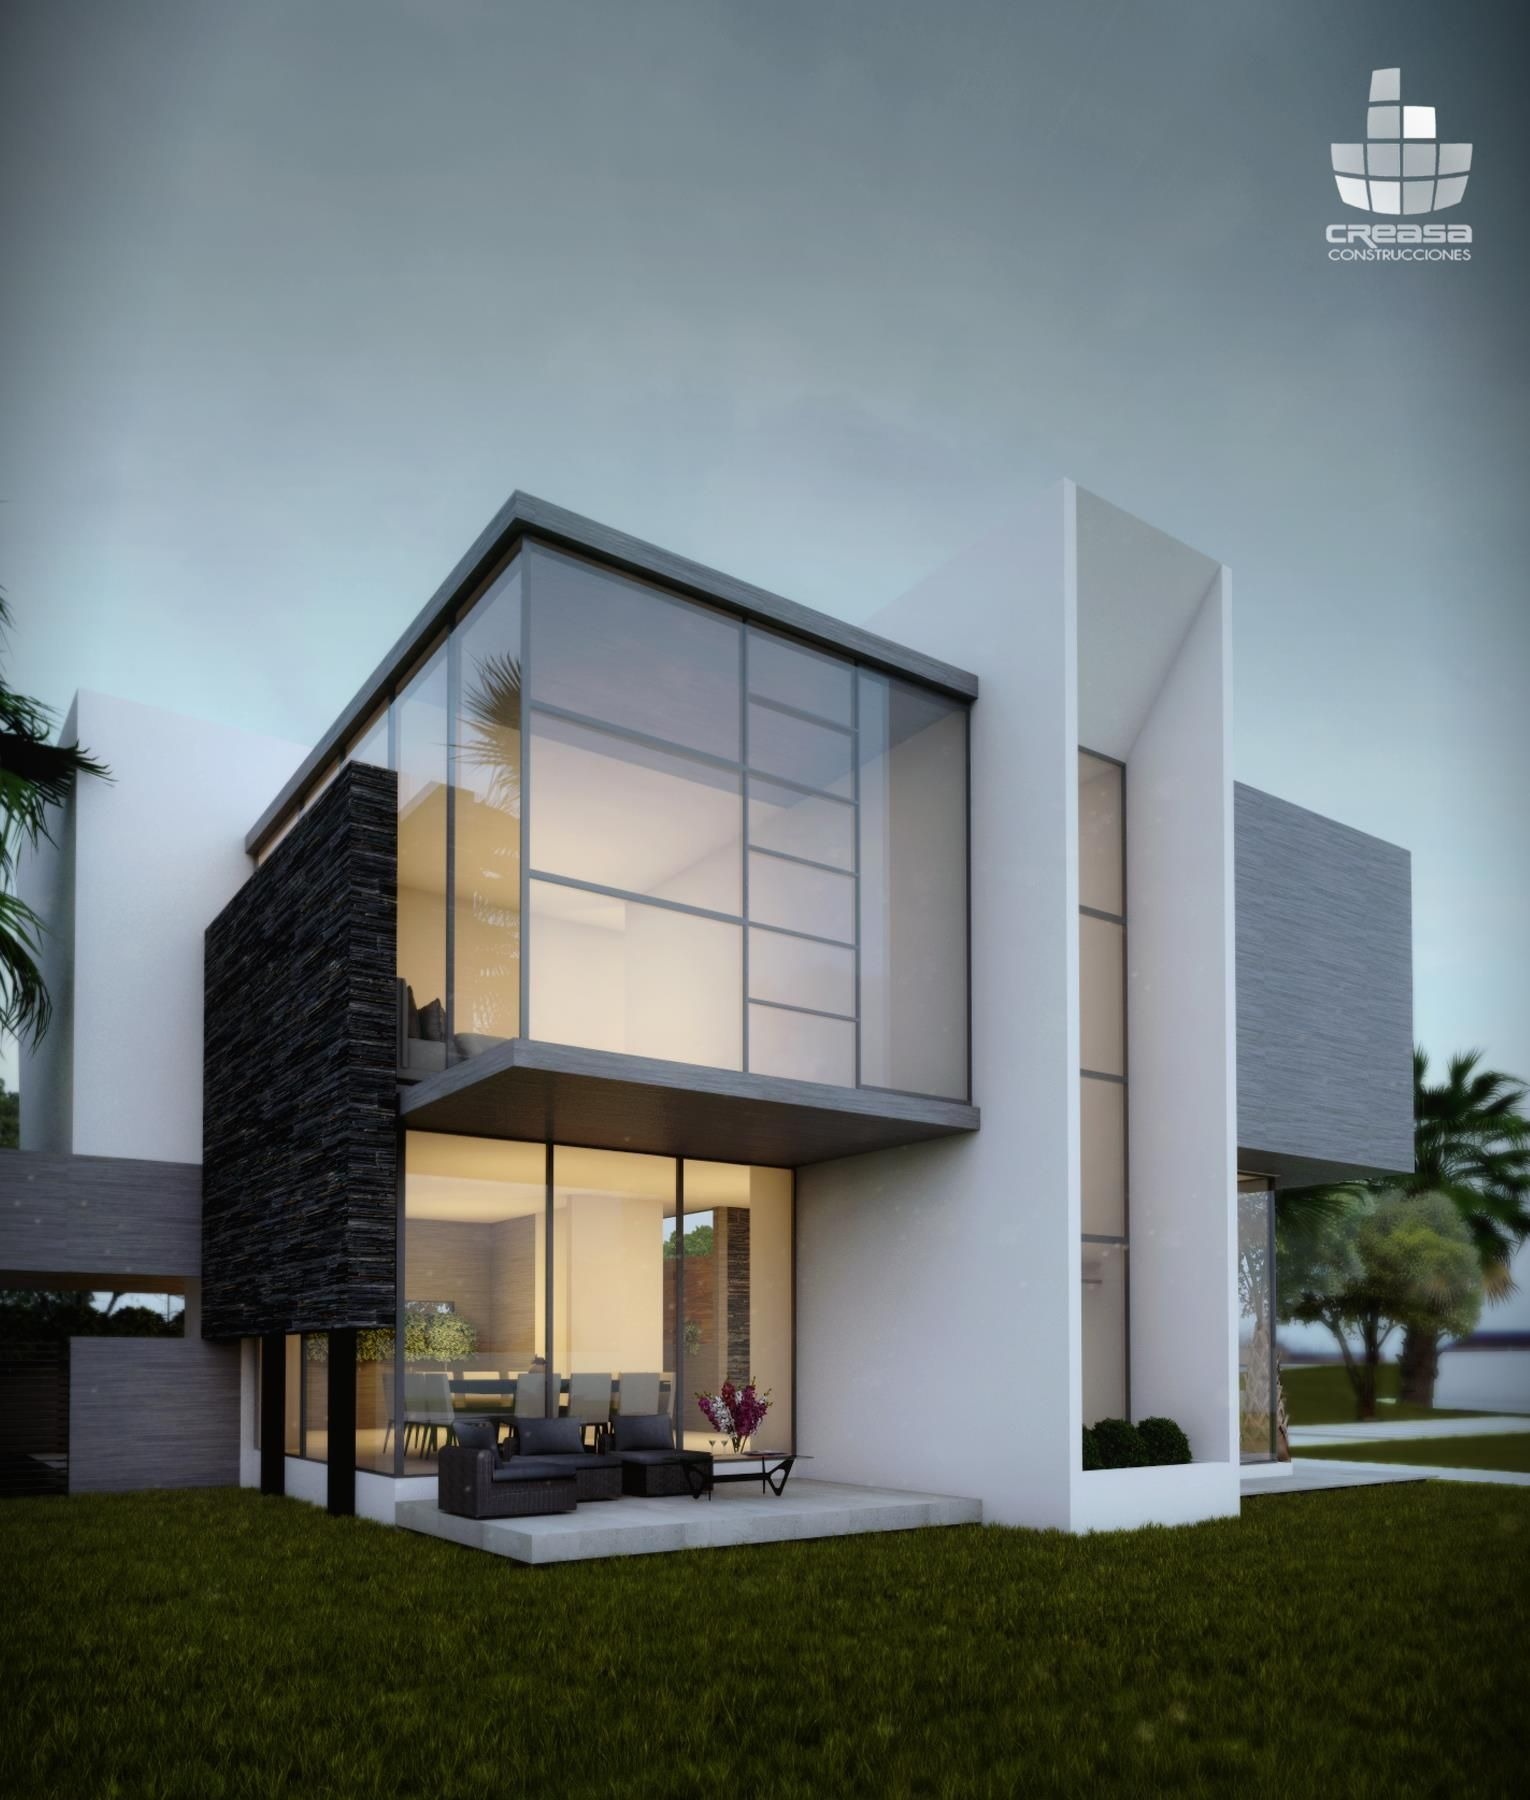 Creasa modern architecture pinterest villas house for Modern residential house plans